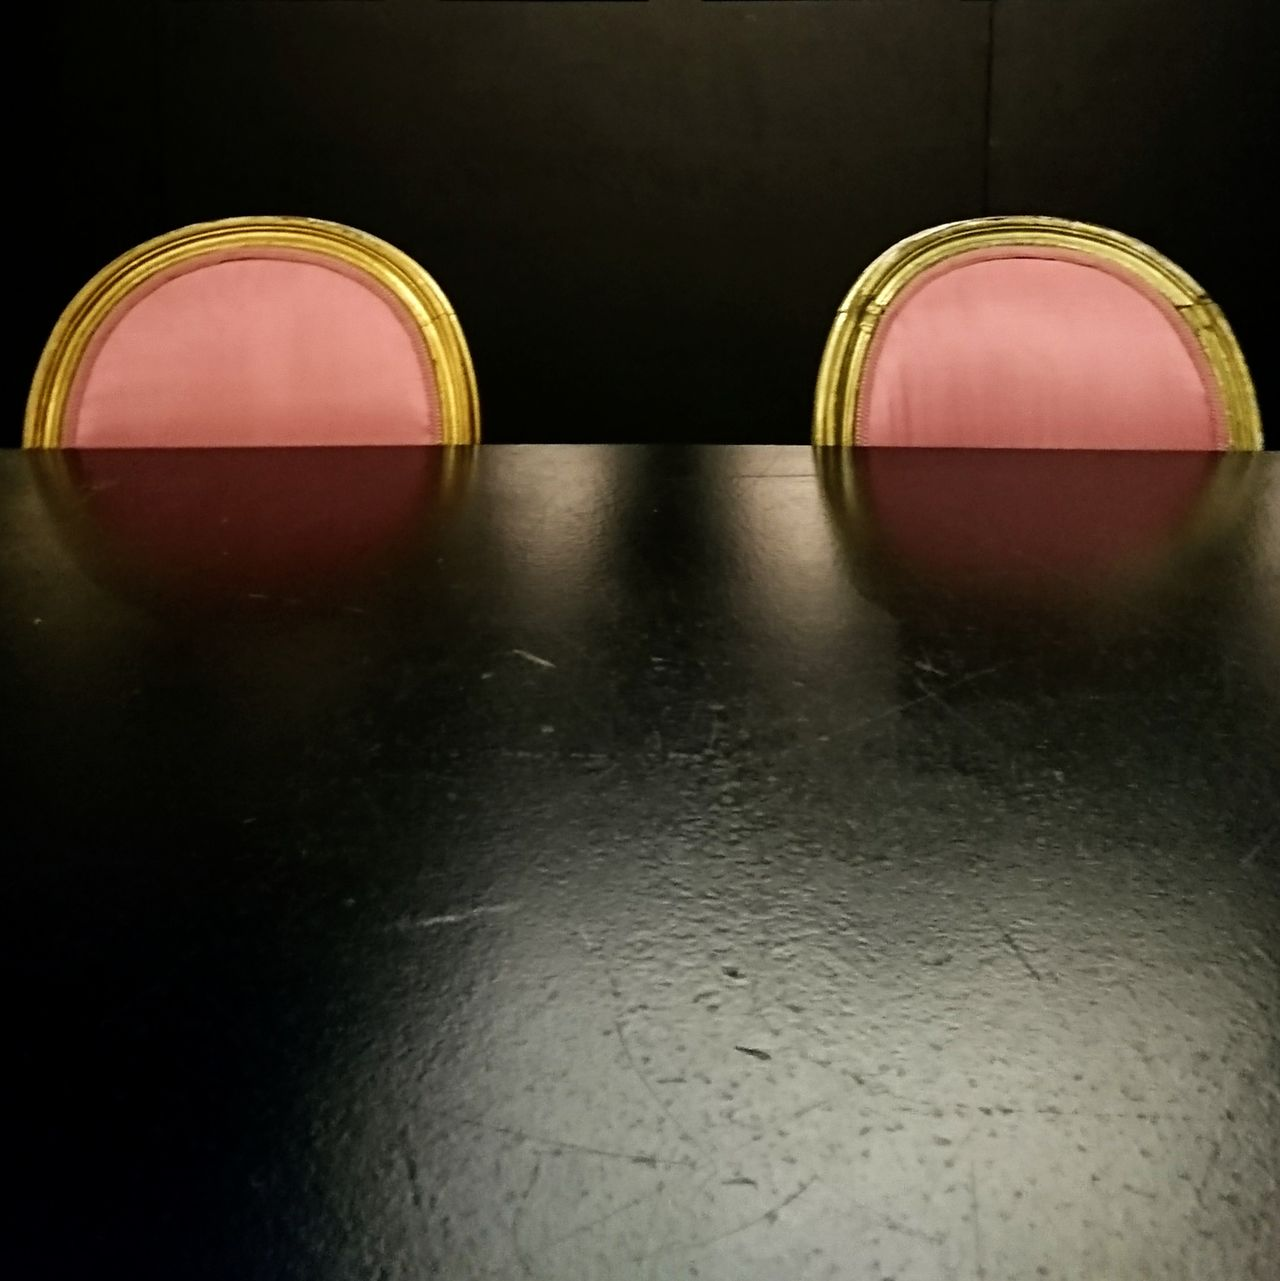 Two chairs ... Looks like mickey mouses' ears No People Minimalist Architecture Modern Architecture Built Structure Chairs Furniture Interior Detail Dark Background